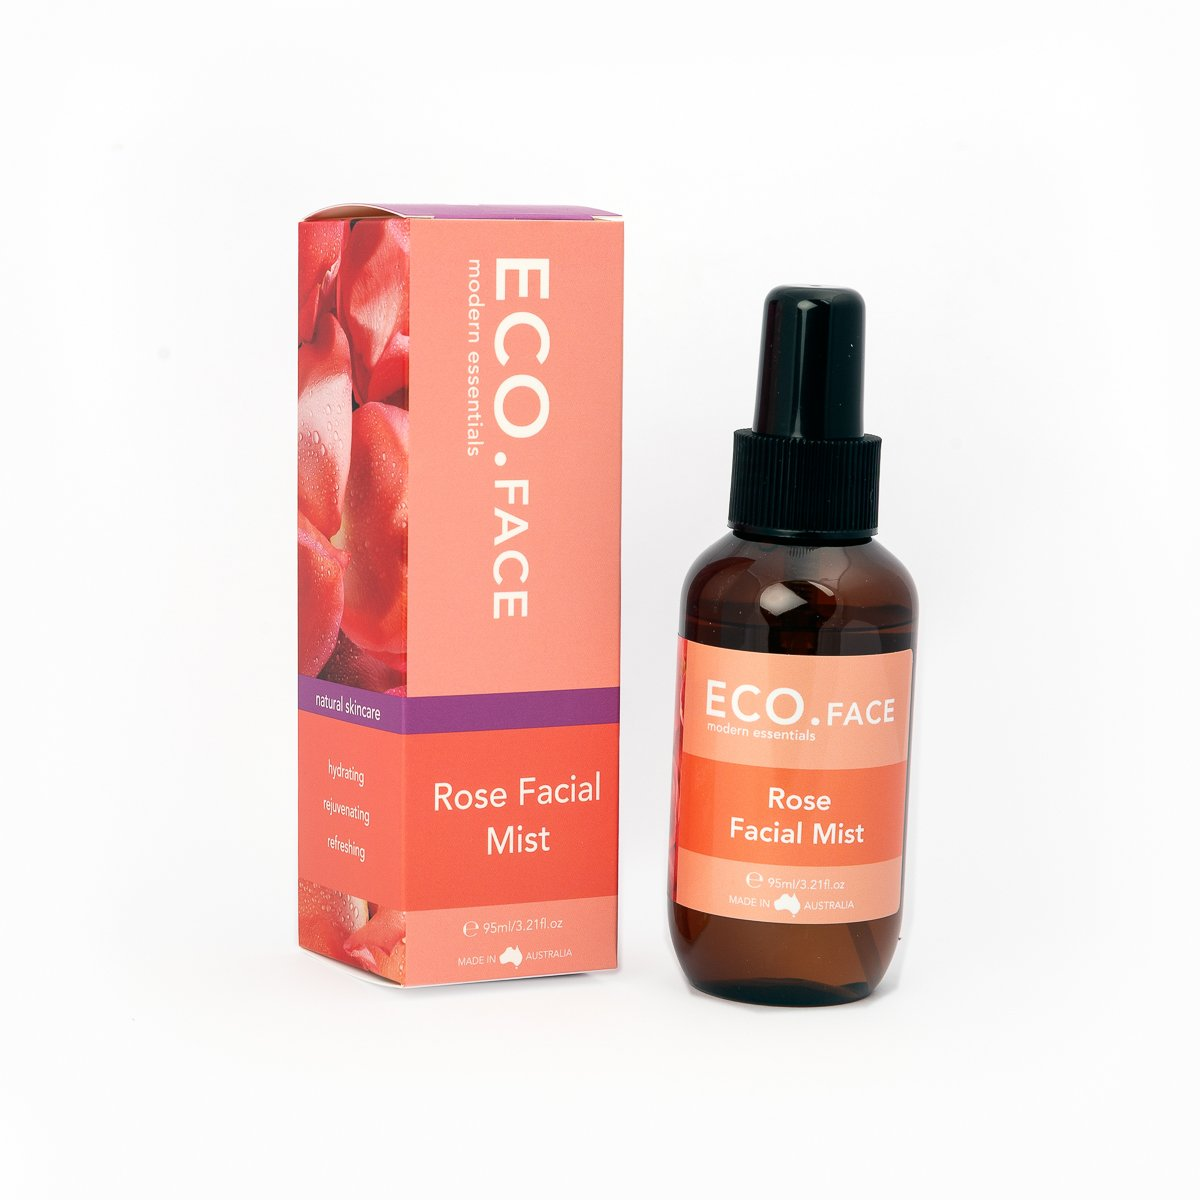 Skin Care | ECO. Rose Facial Mist